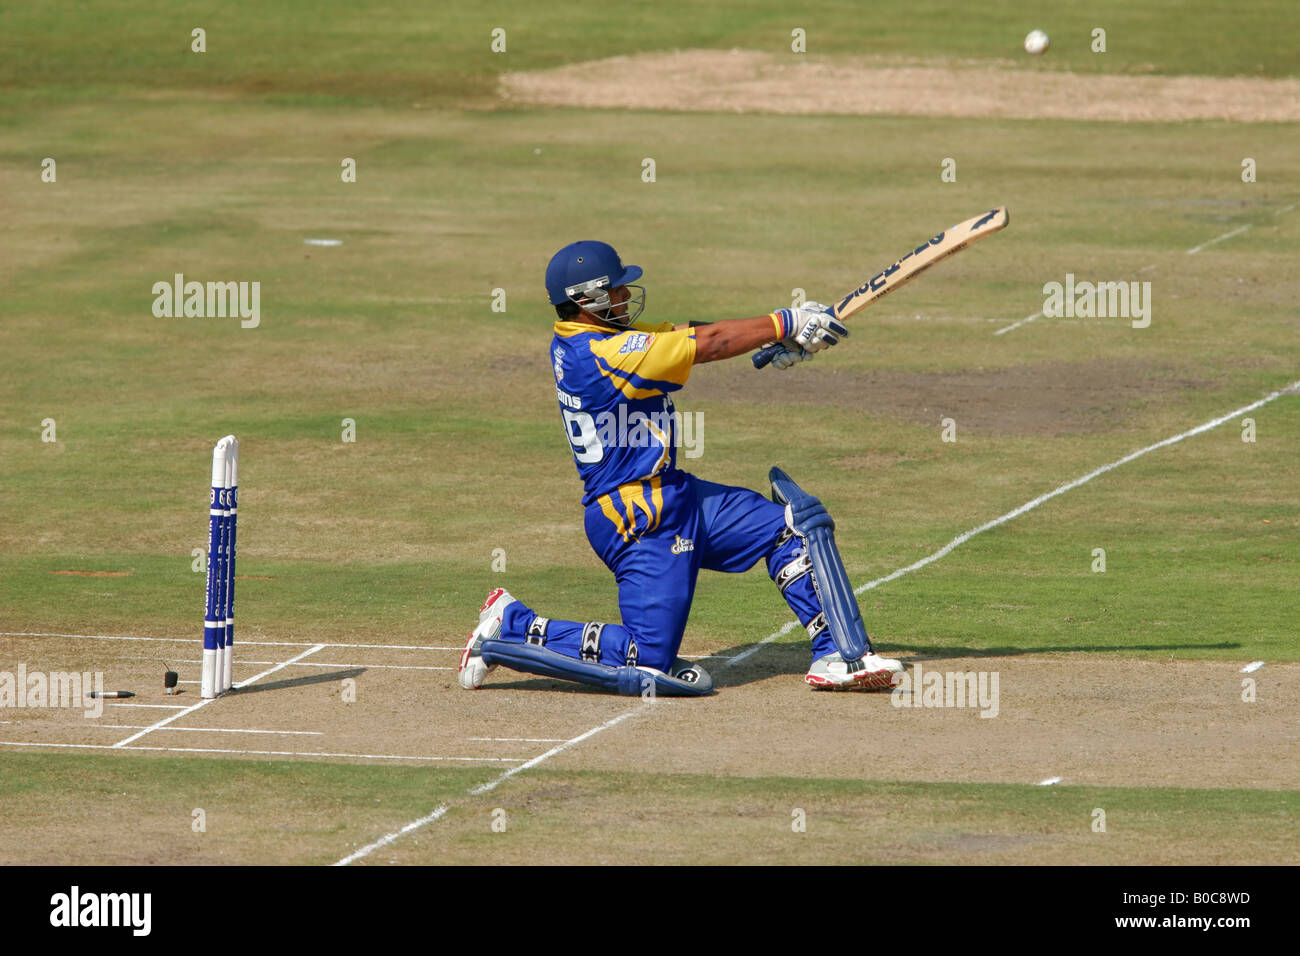 Batsman hitting the ball during a one-day cricket match between the Cape Cobras and Free State Eagles, Bloemfontein - Stock Image